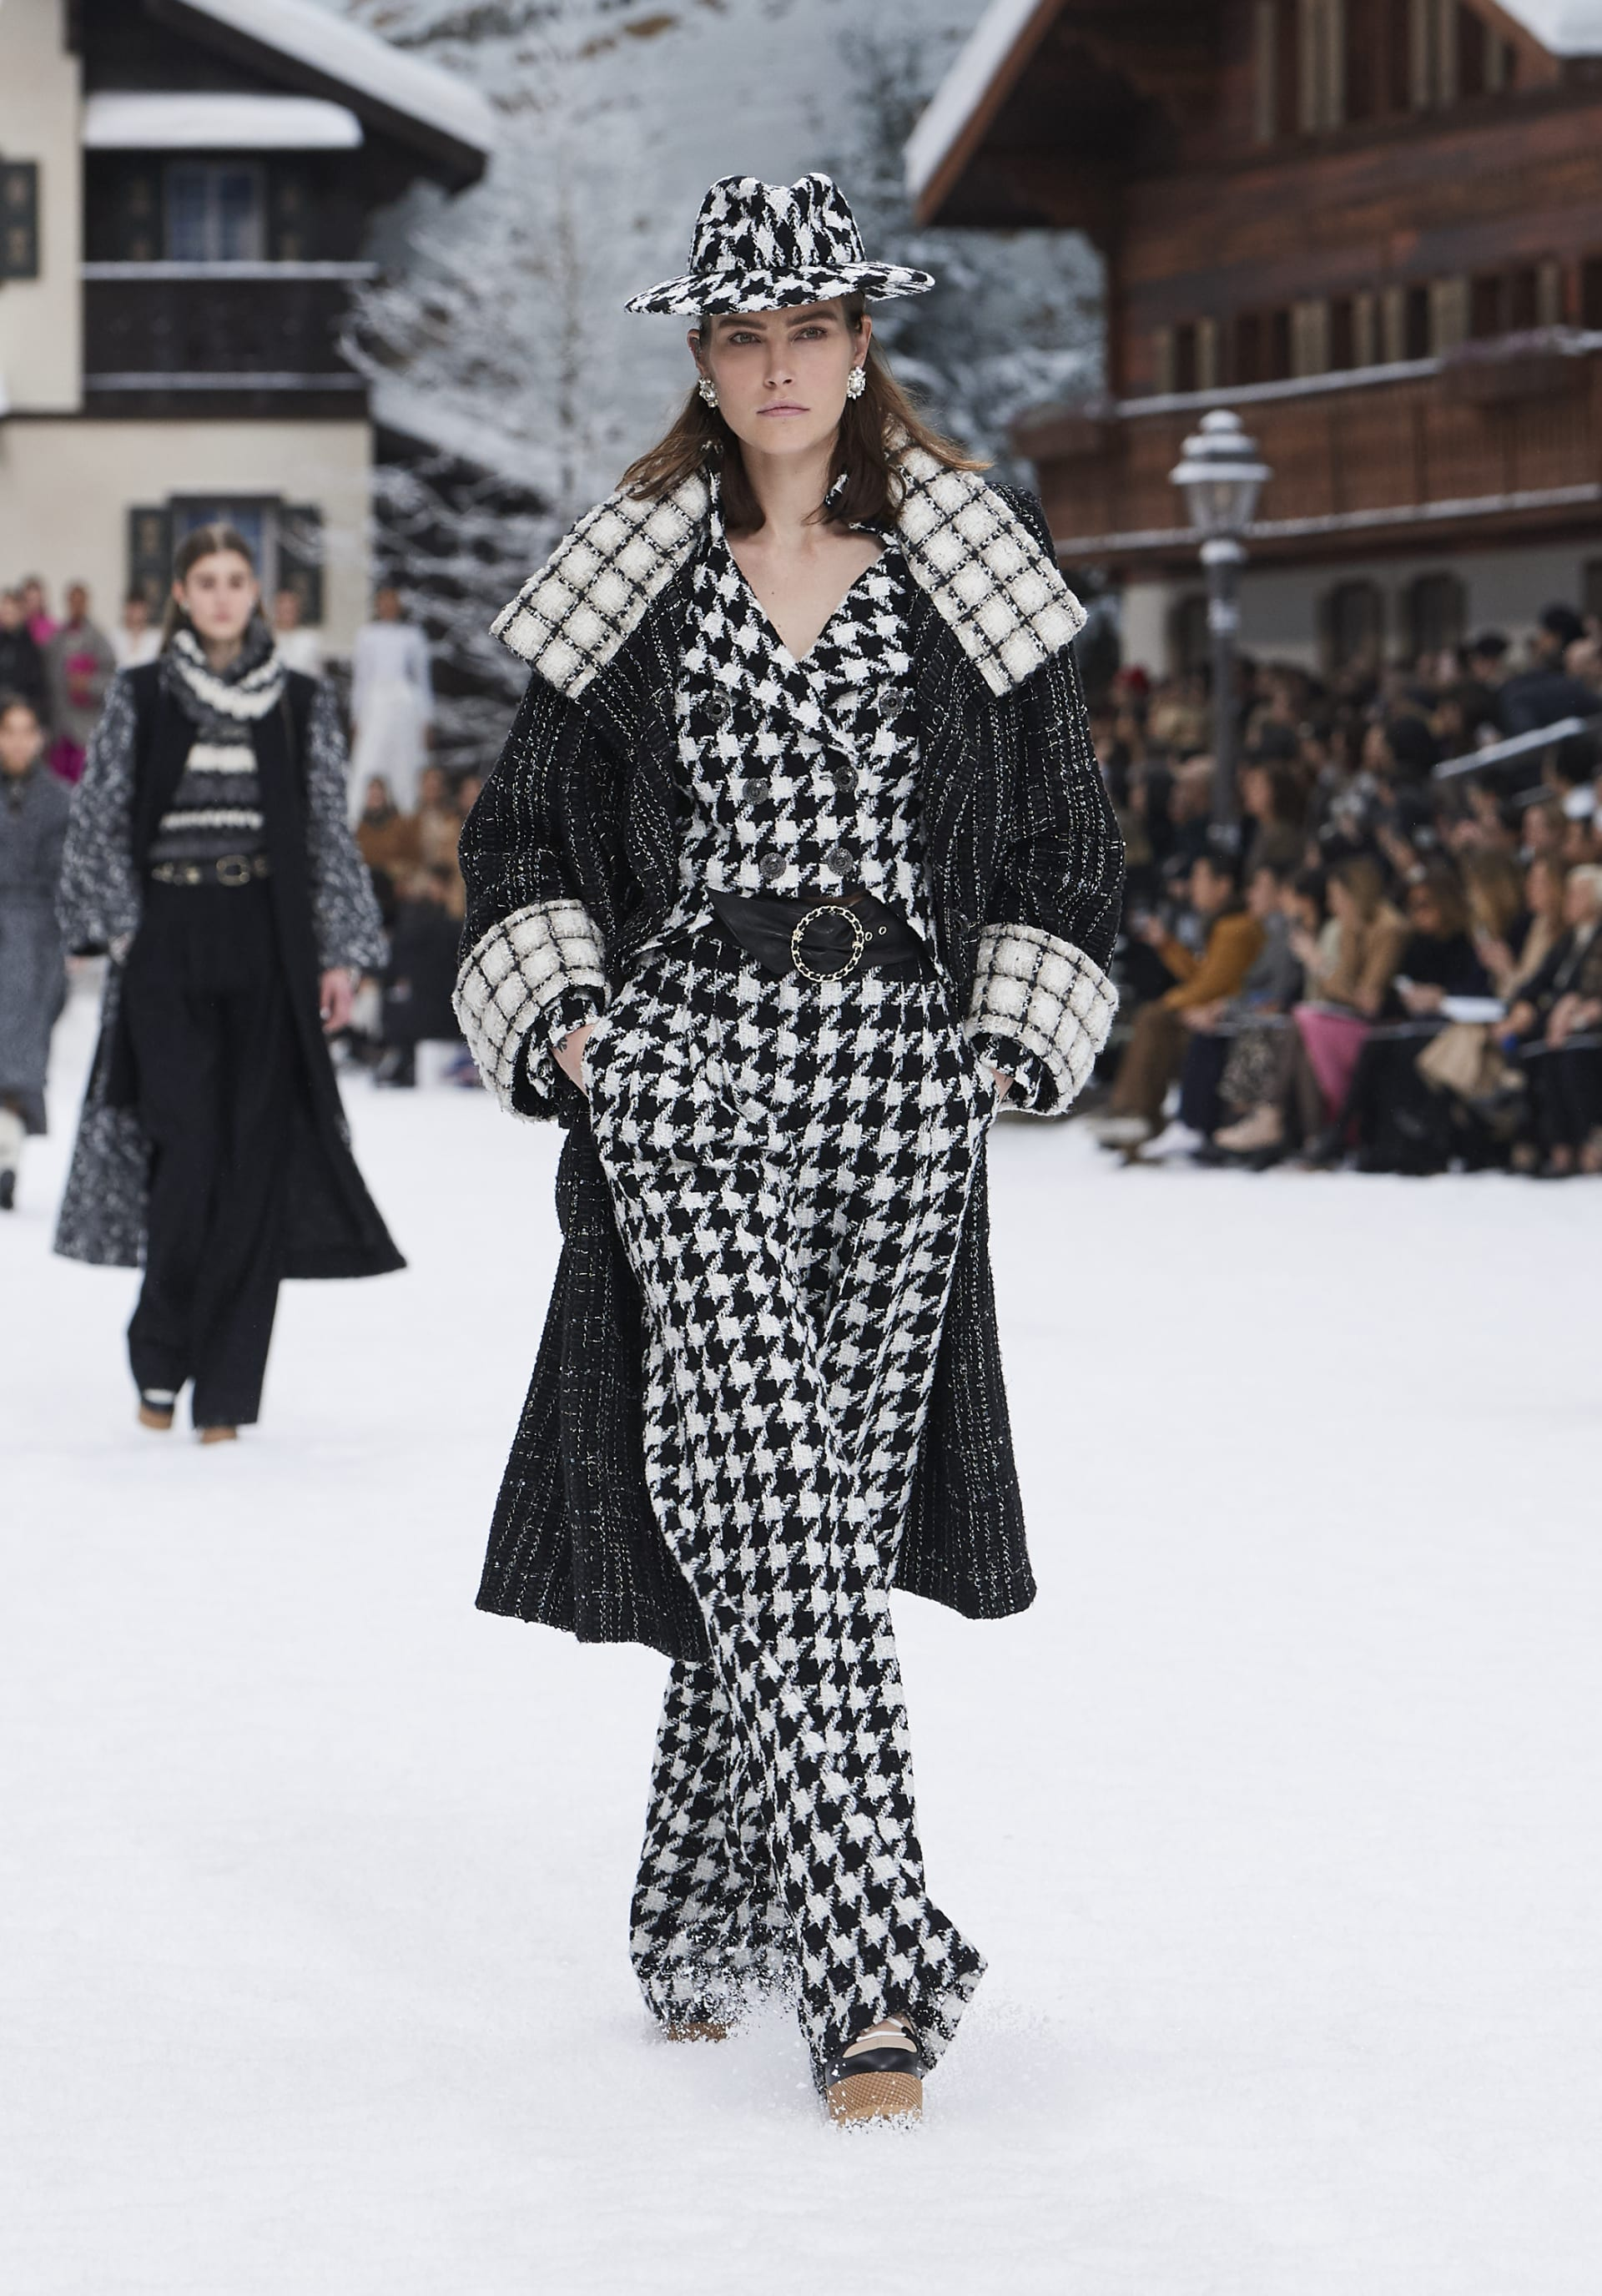 View 1 - Look 7 - Fall-Winter 2019/20